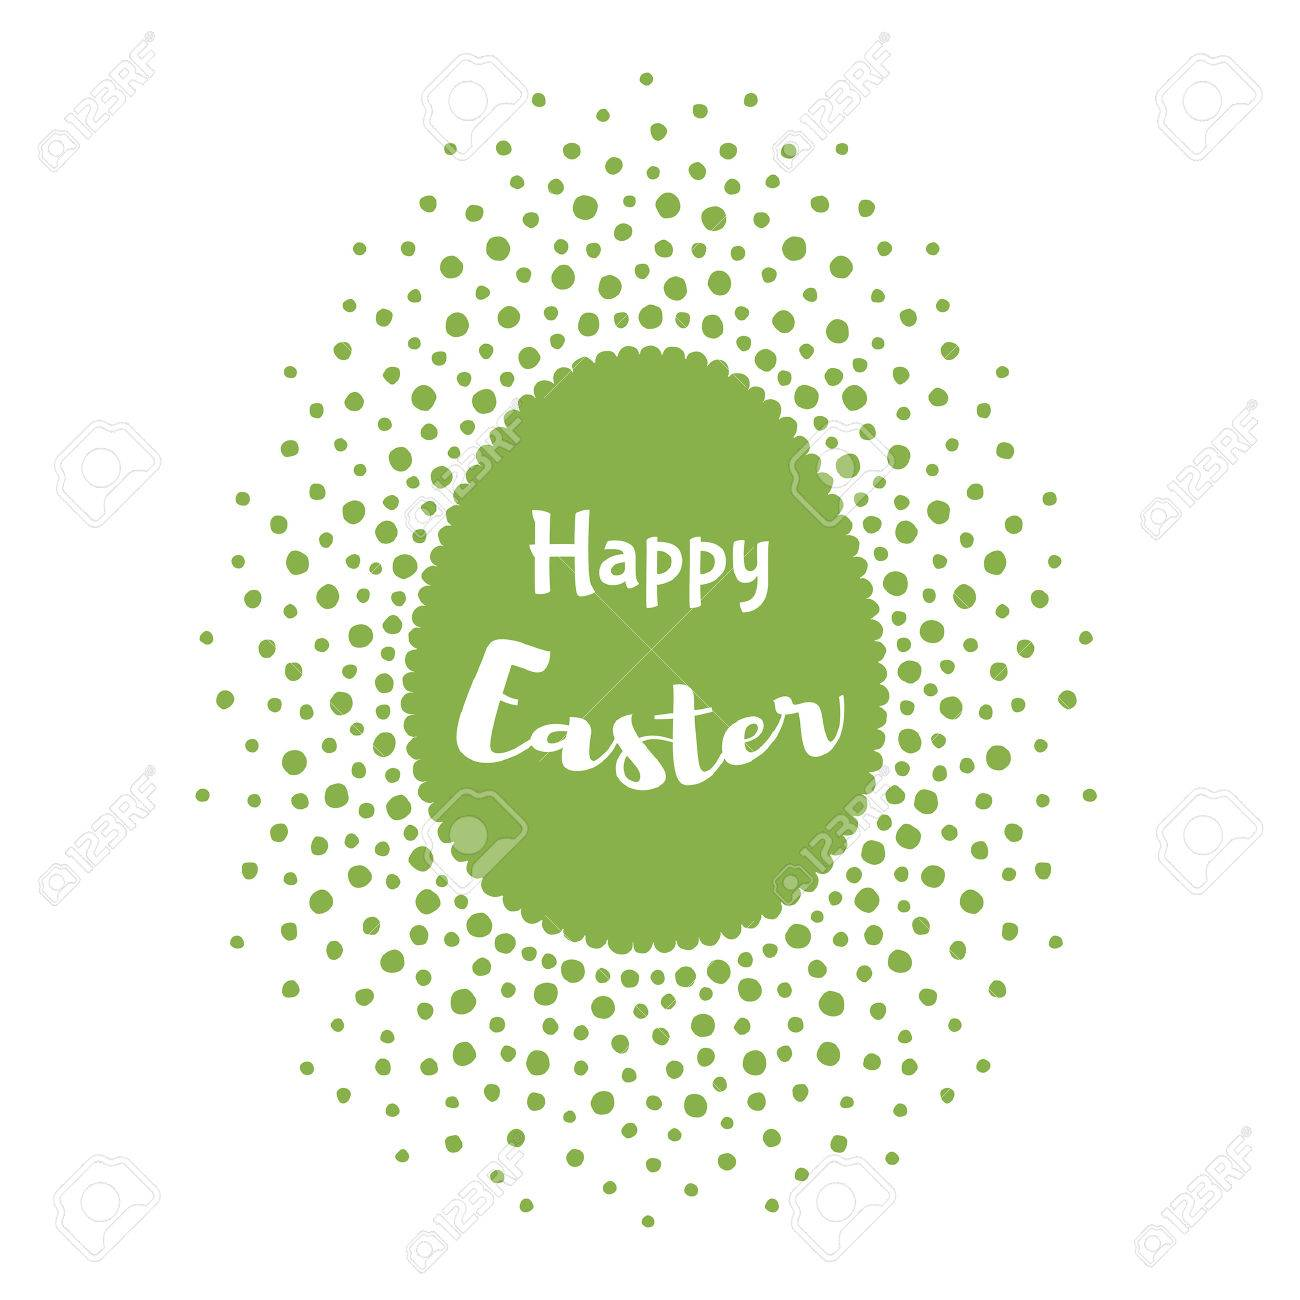 Happy Easter Greeting Card Template Egg Shape Frame Made Of